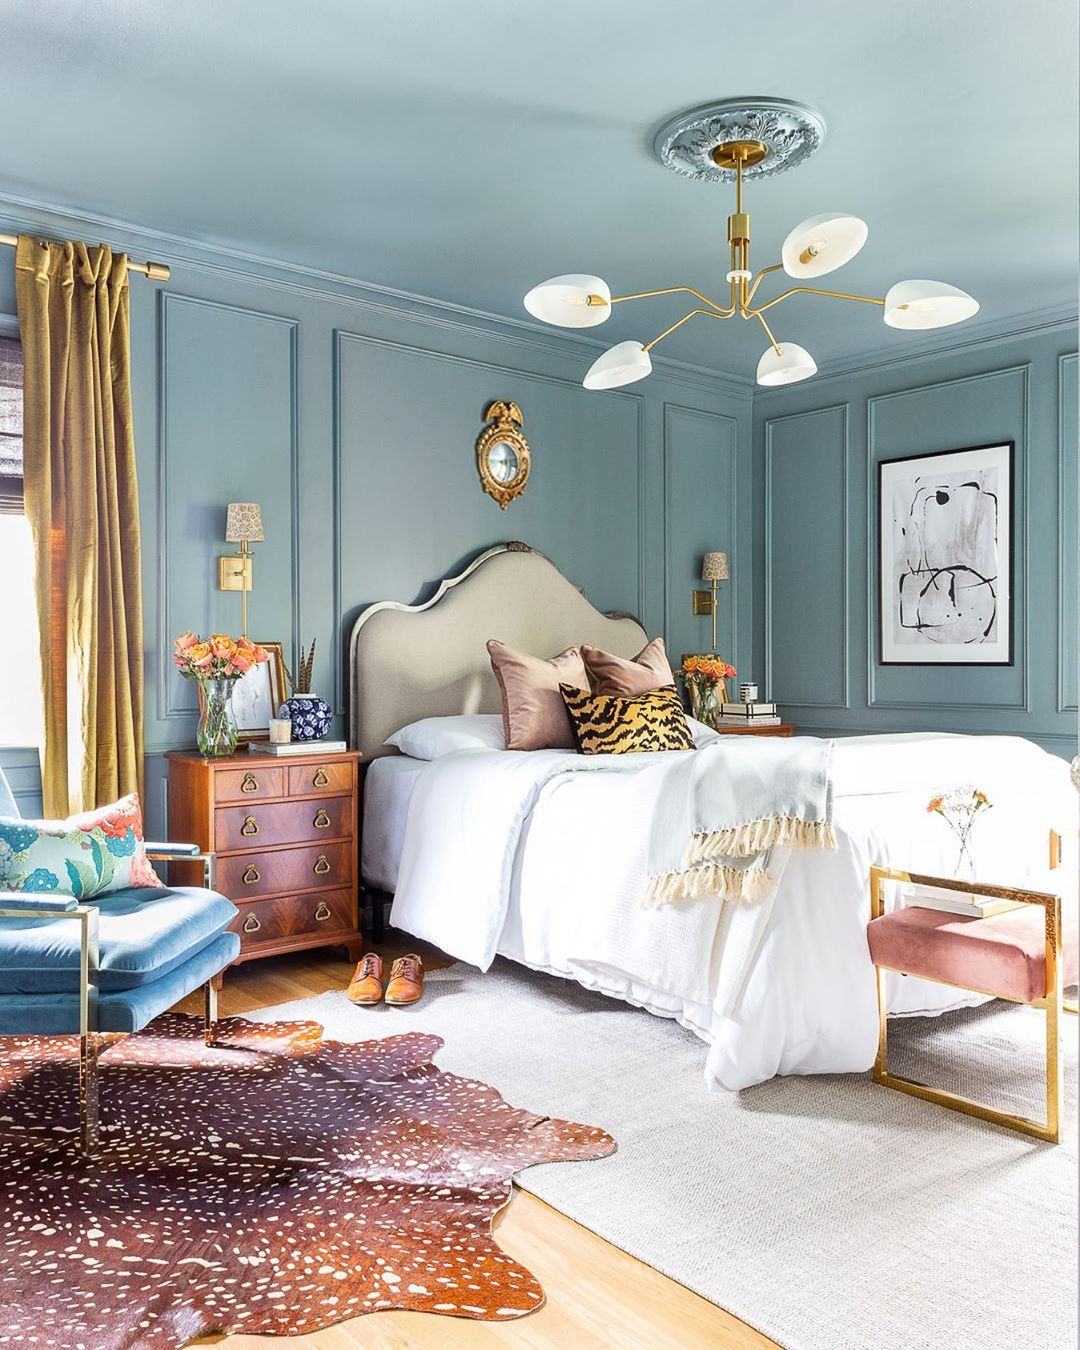 Stylish ways to decorate with gilt mirrors - Vinterior